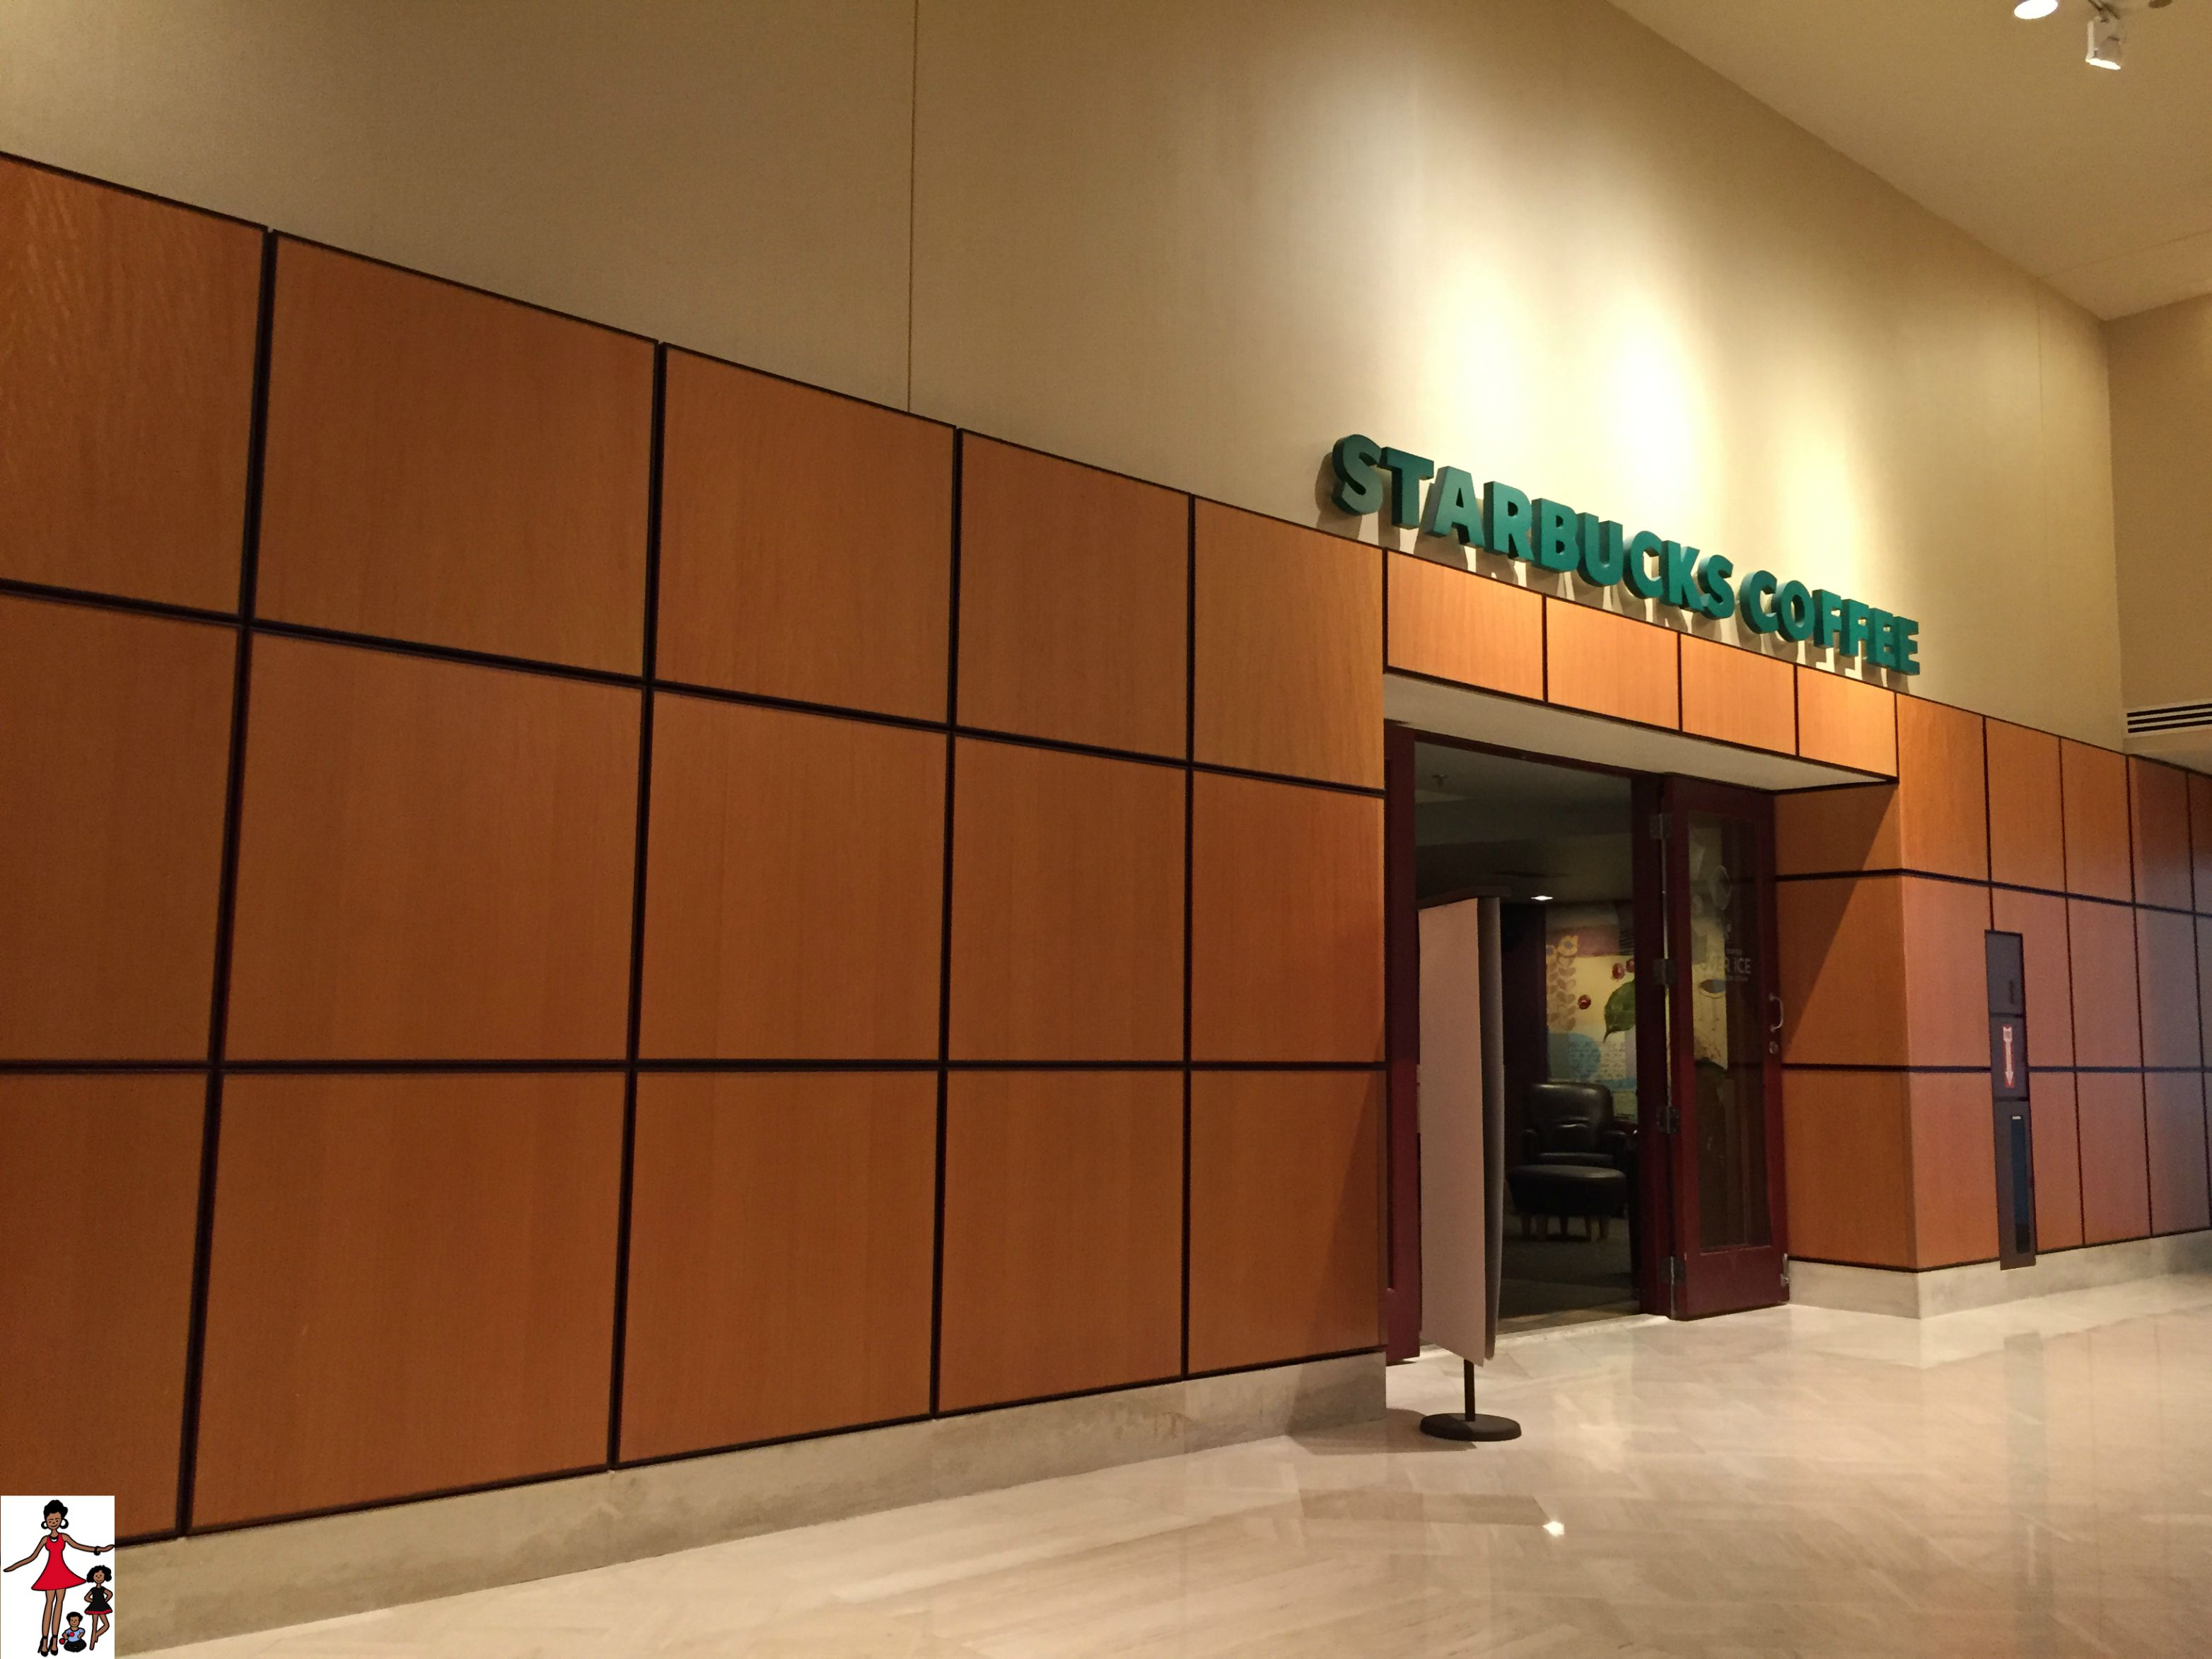 starbucks-at-jwmarriott-dc